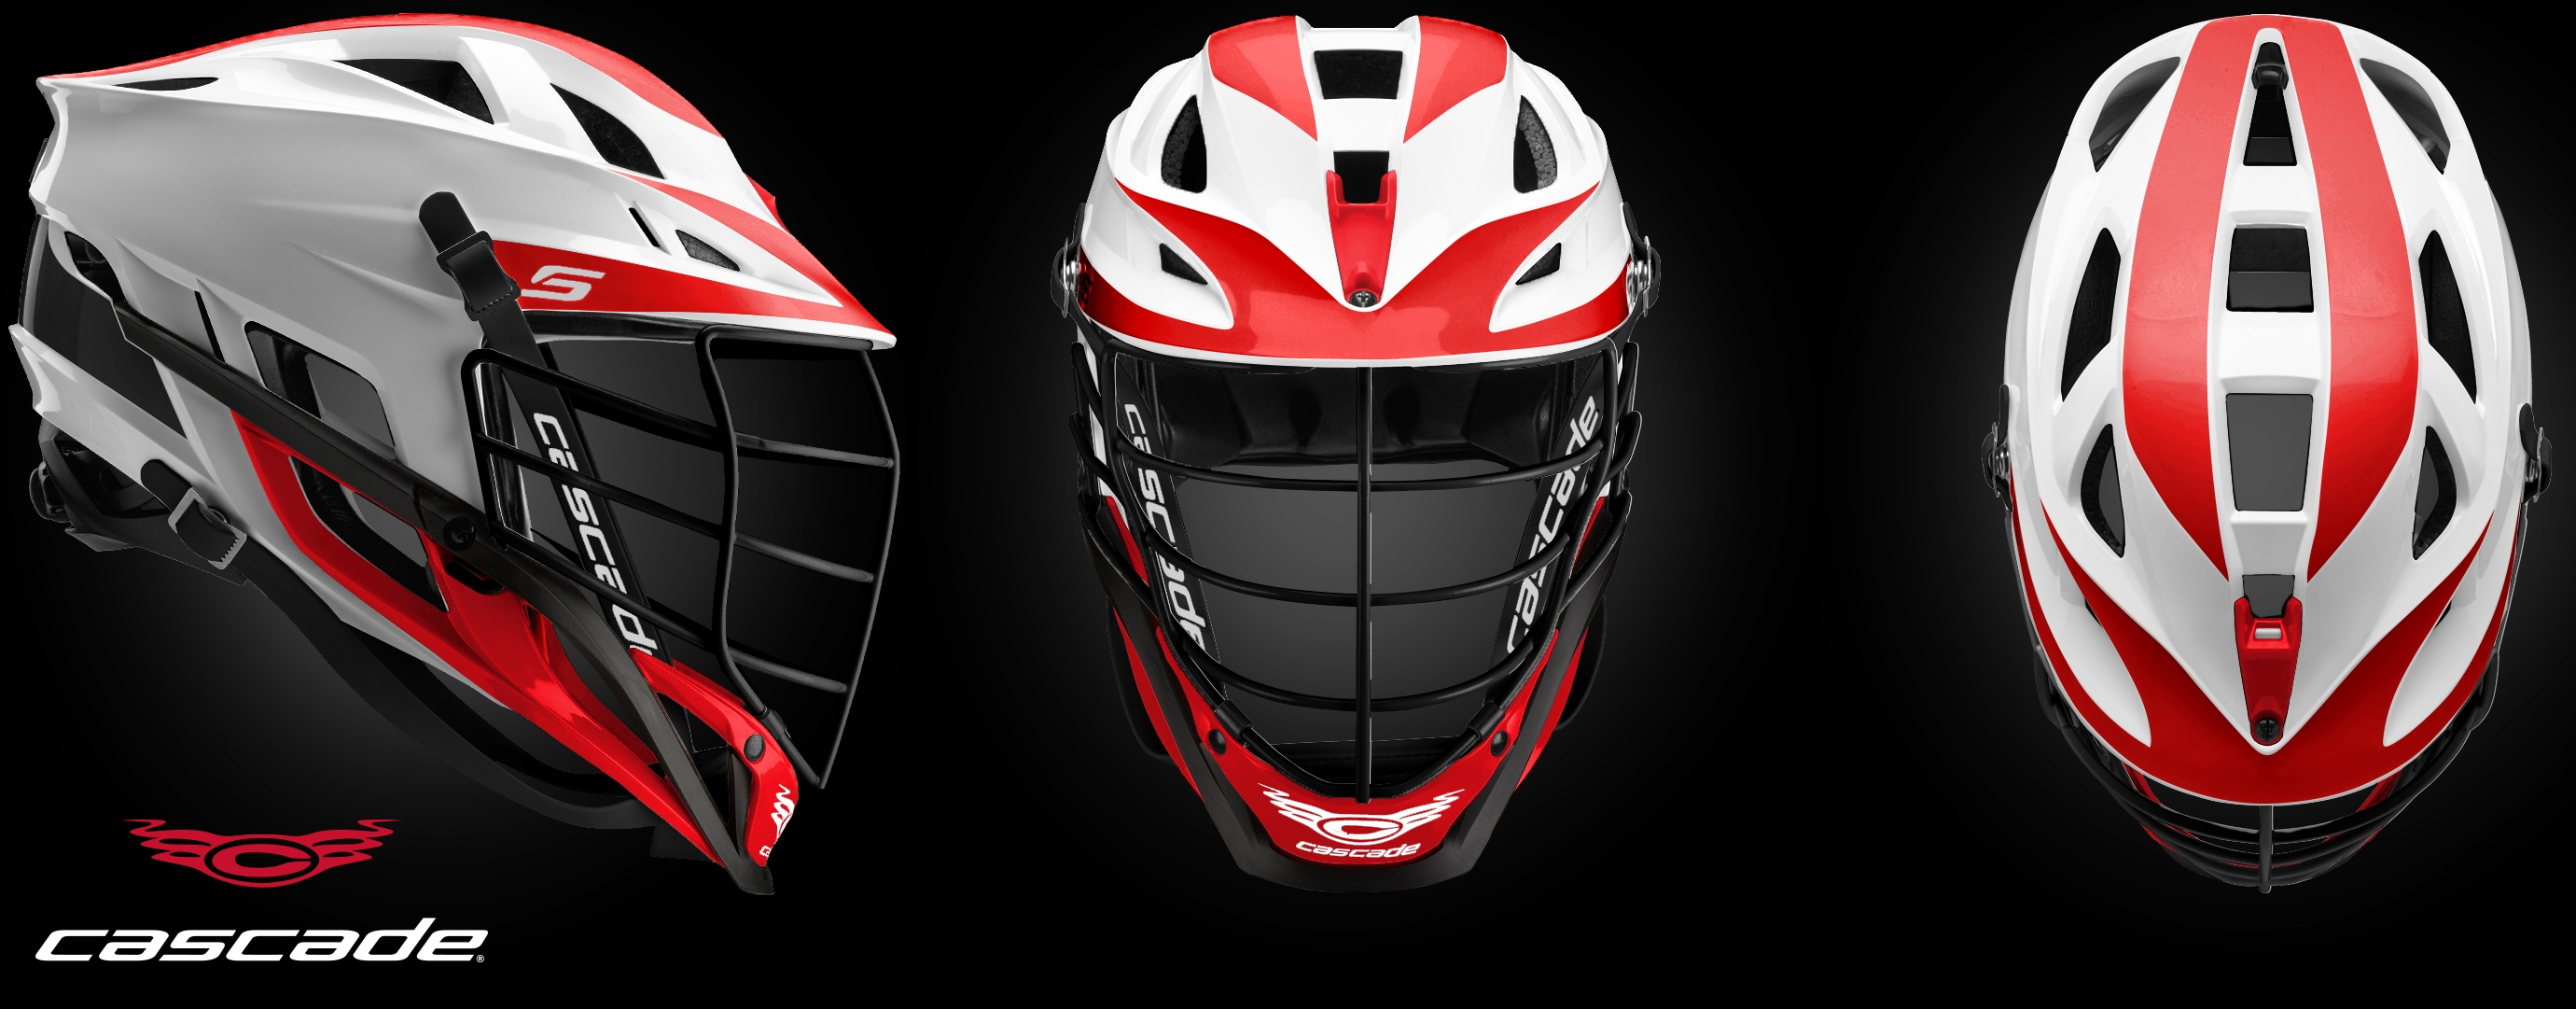 Cascade helmet in white & red